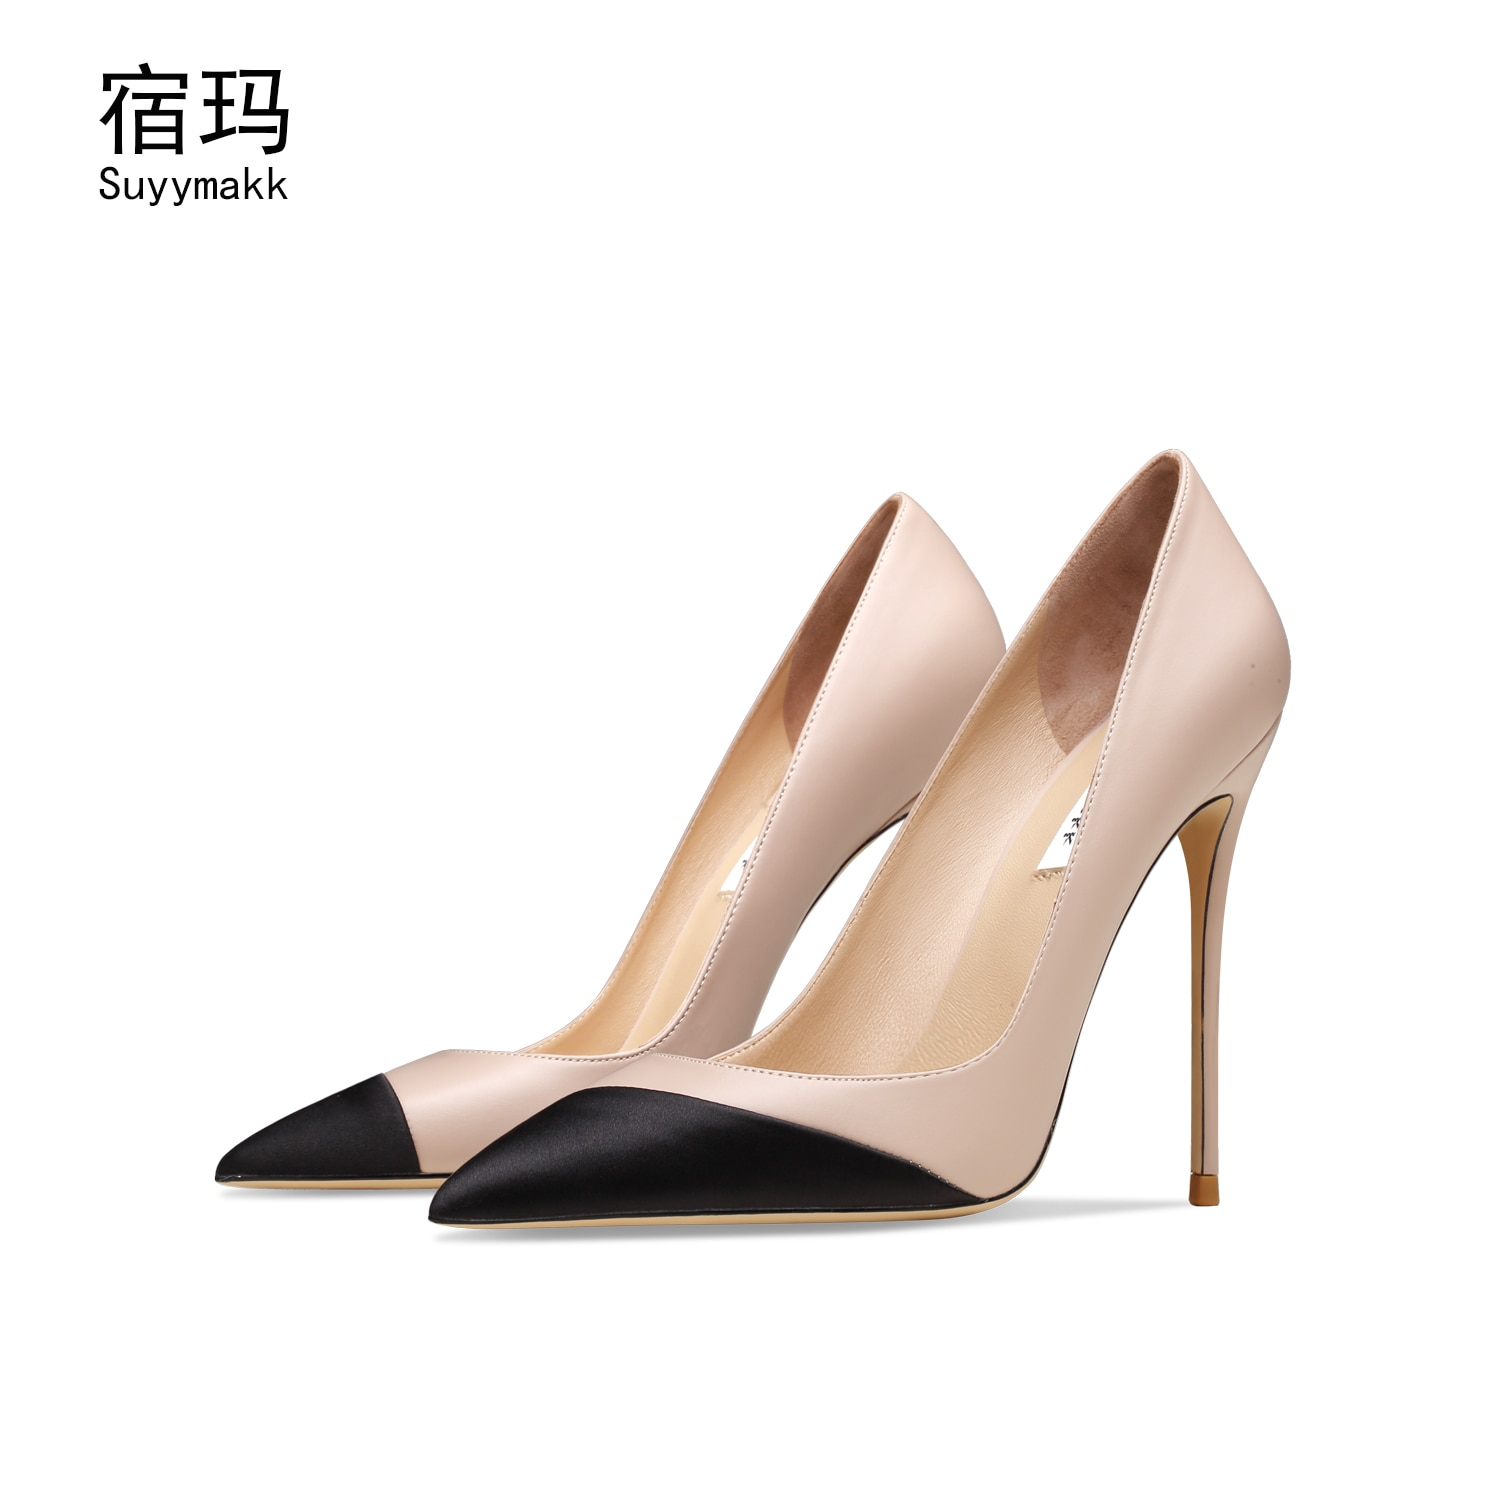 Sheepskin 2021 New Women's High Heels Pointed Toe Sexy Wedding Pumps Thin Heels Shoes Lady Big Size 6/10cm Elegant Office Shoes onlymaker women s pointed toe block classic 12cm high heels slip on thick shoes wedding office dress big size chunky lady pumps